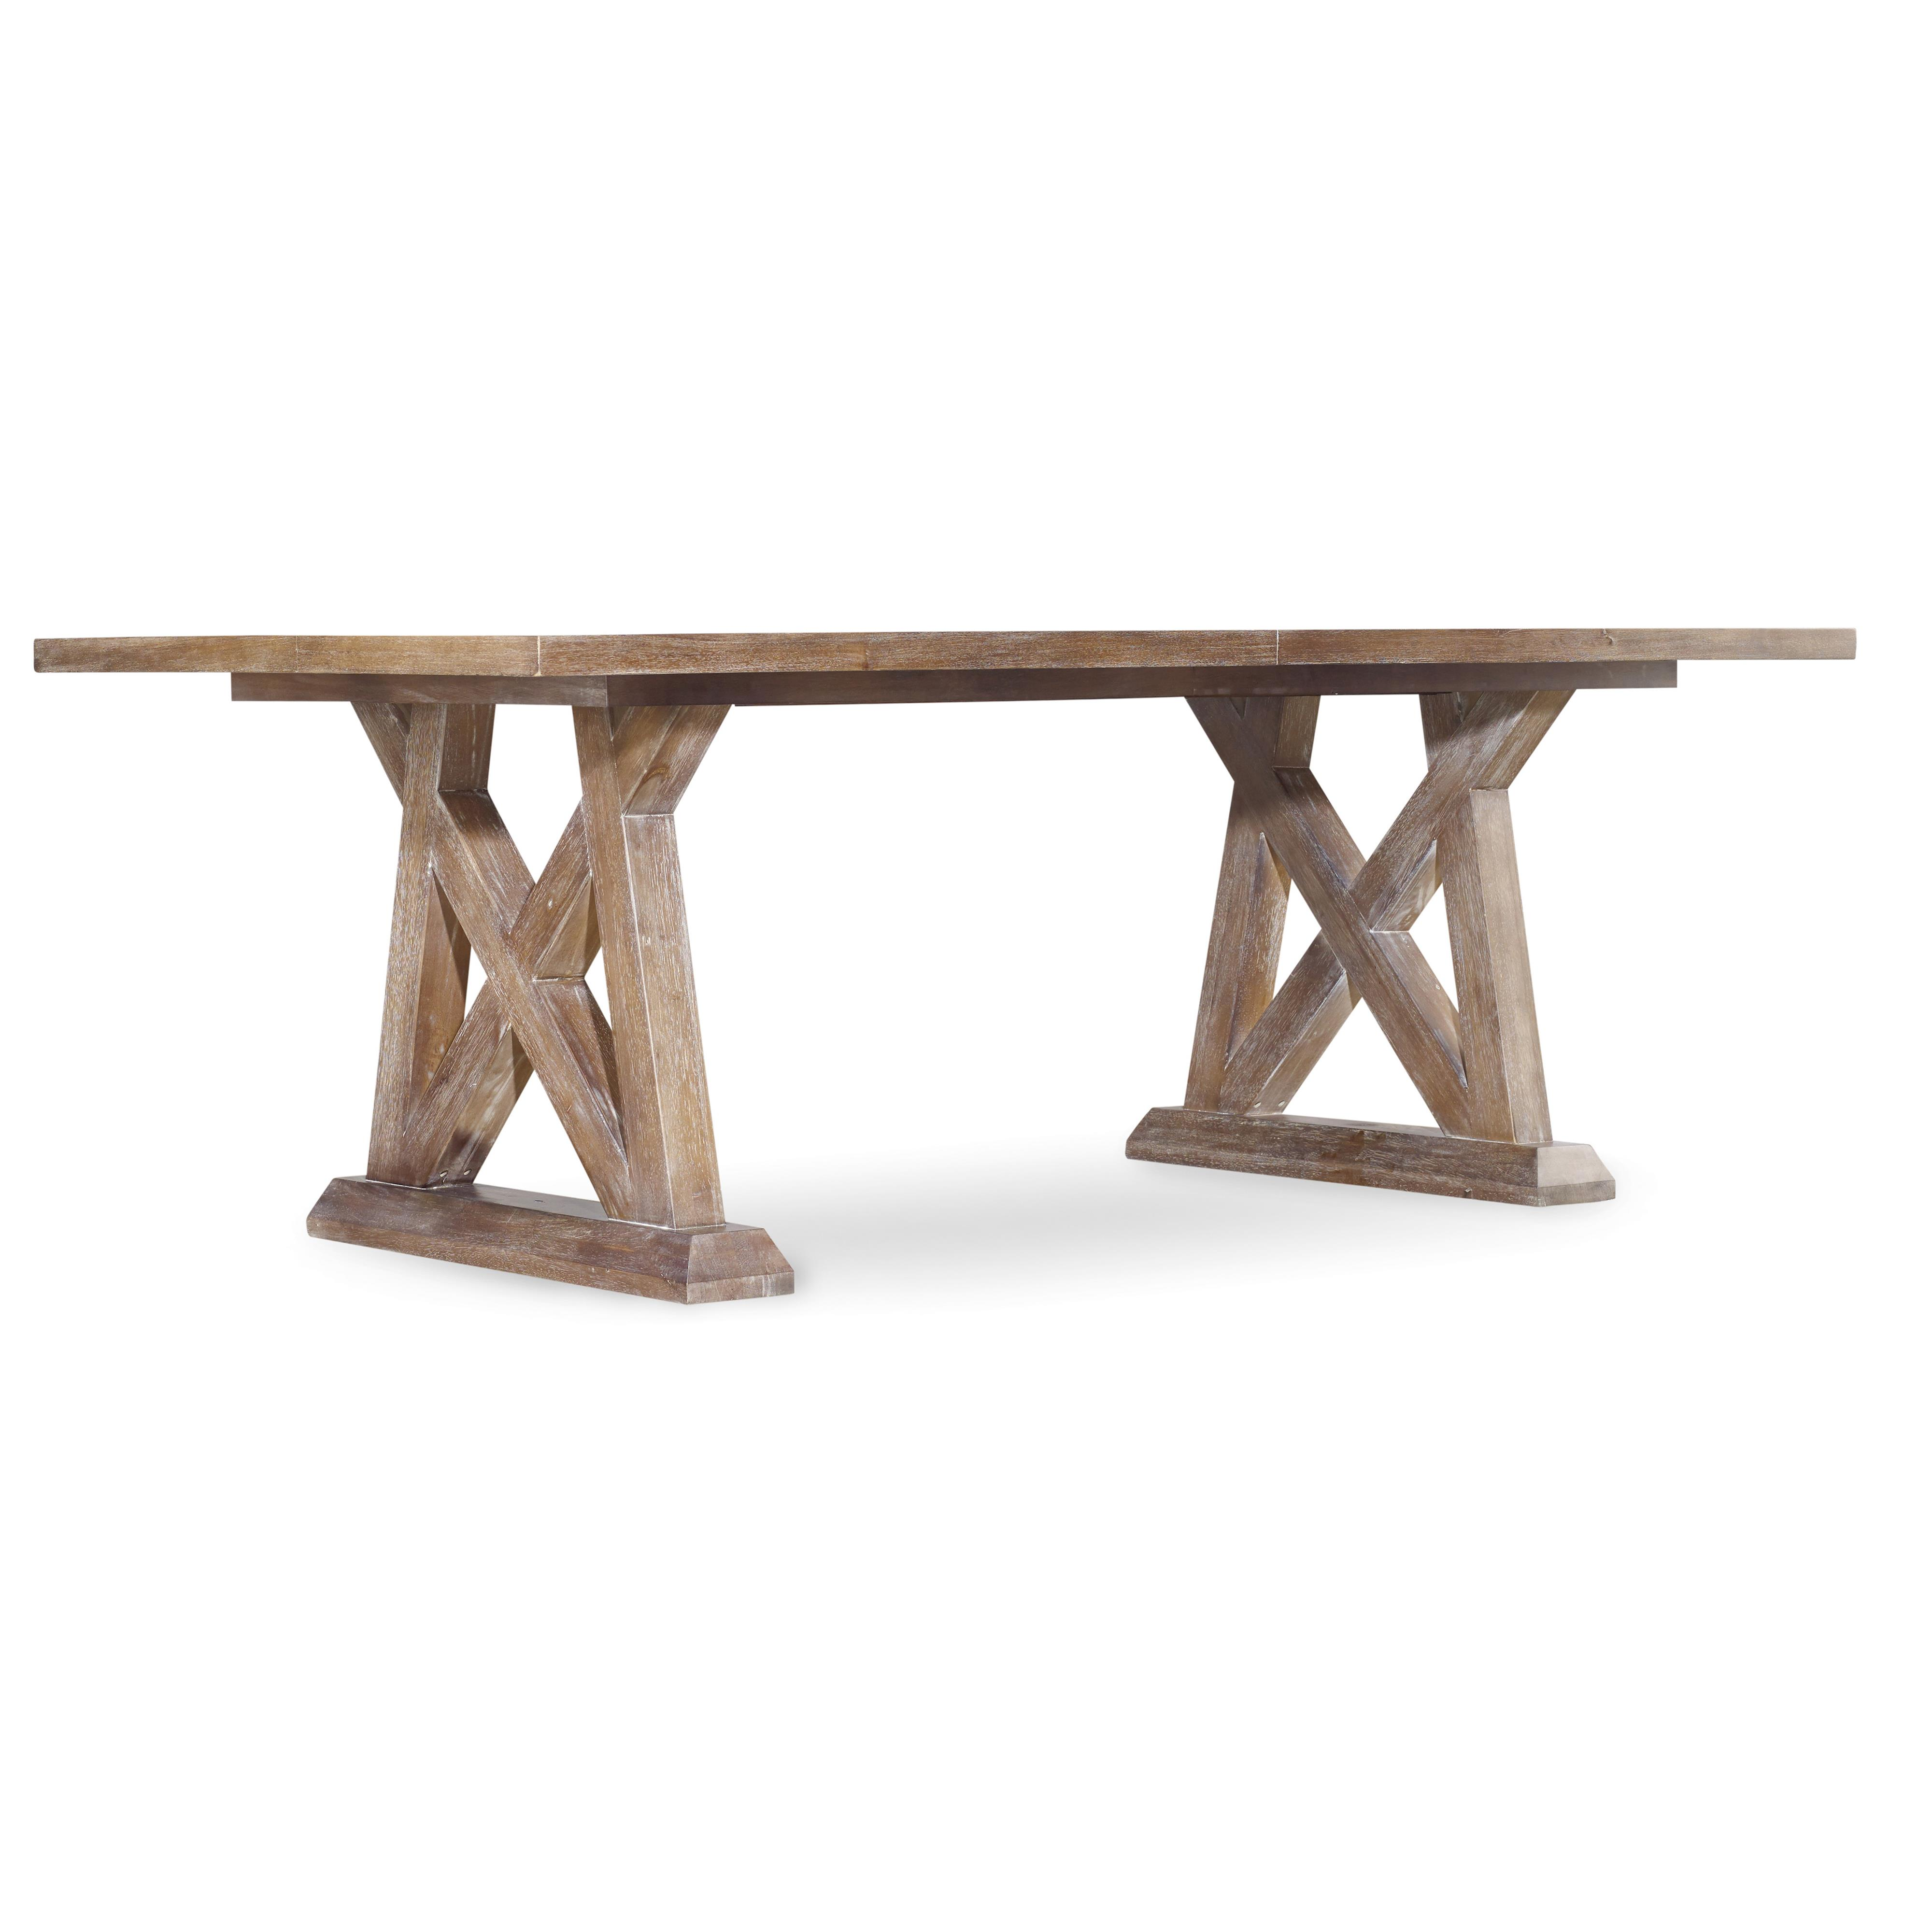 Hooker furniture studio 7h geo trestle dining table with x for Pedestal trestle dining table plans